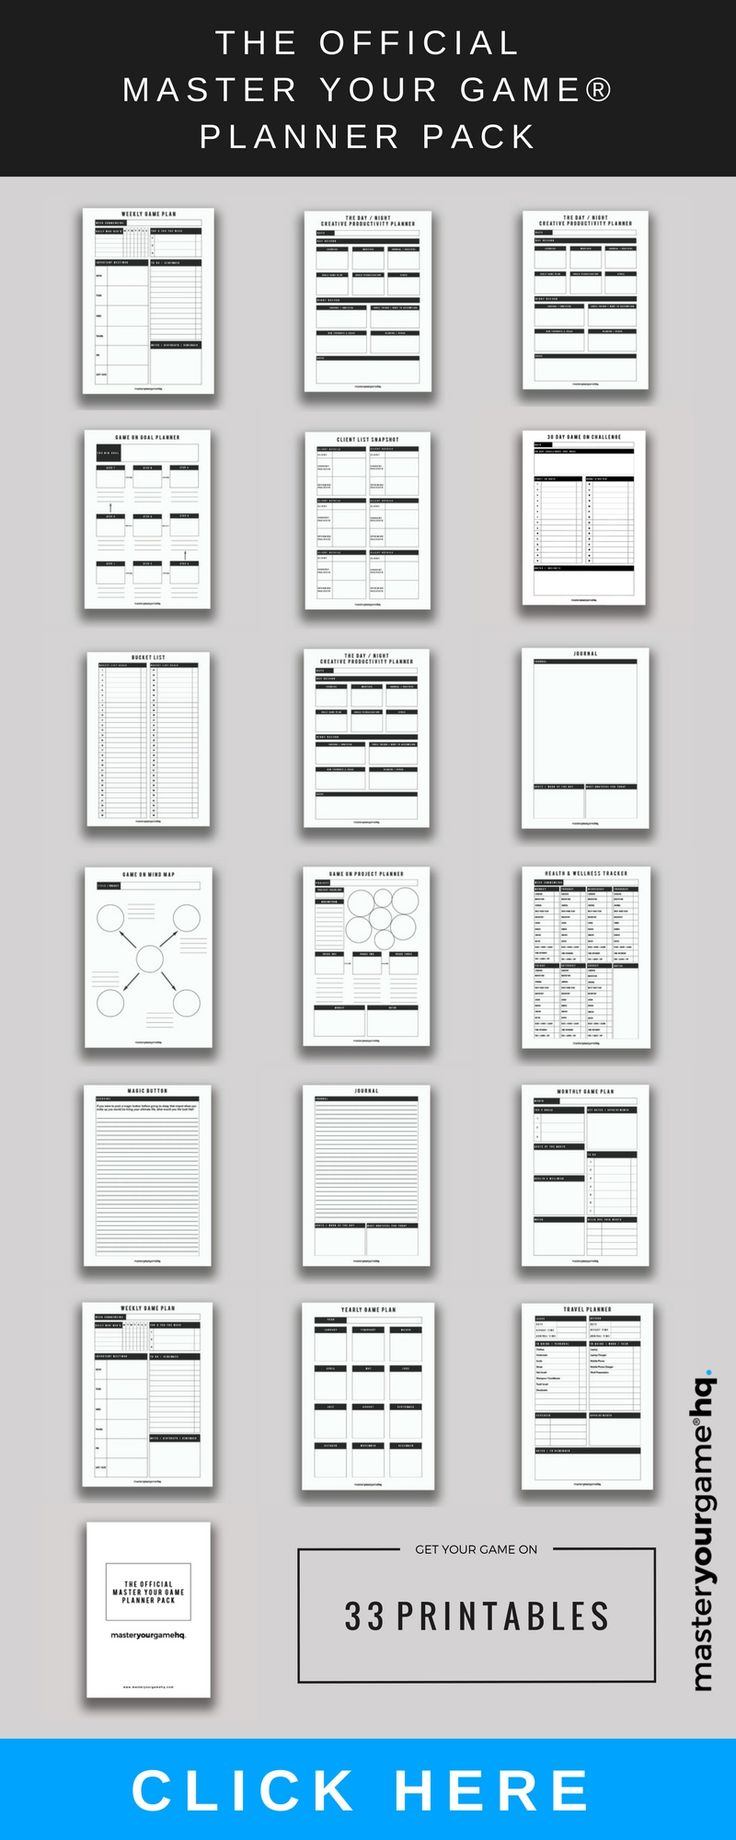 33 game planning printable and fillable instant downloads to help Master Your Game in business and life.